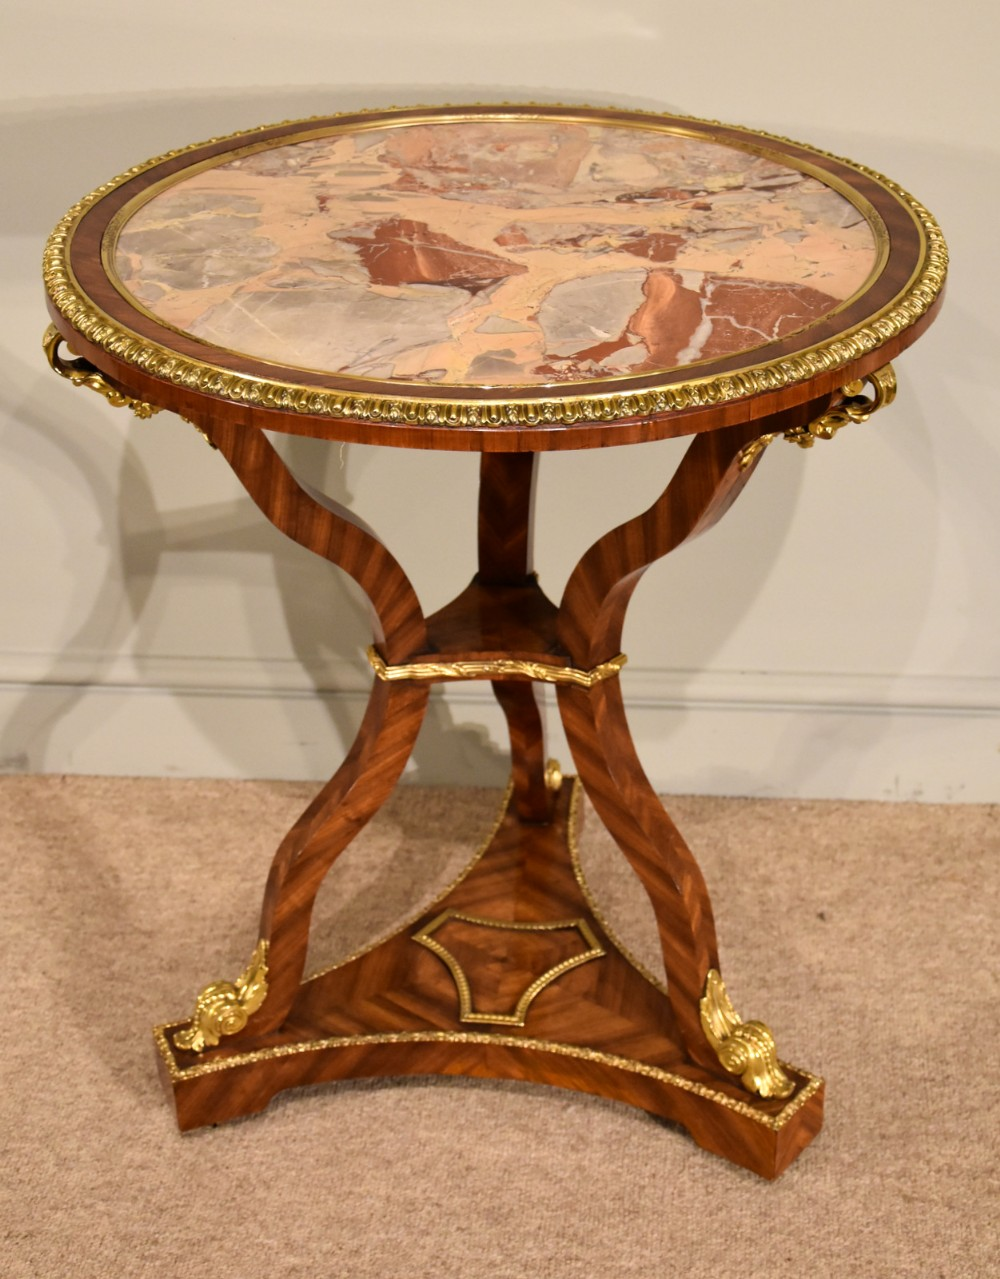 regency marble and kingwood centre table